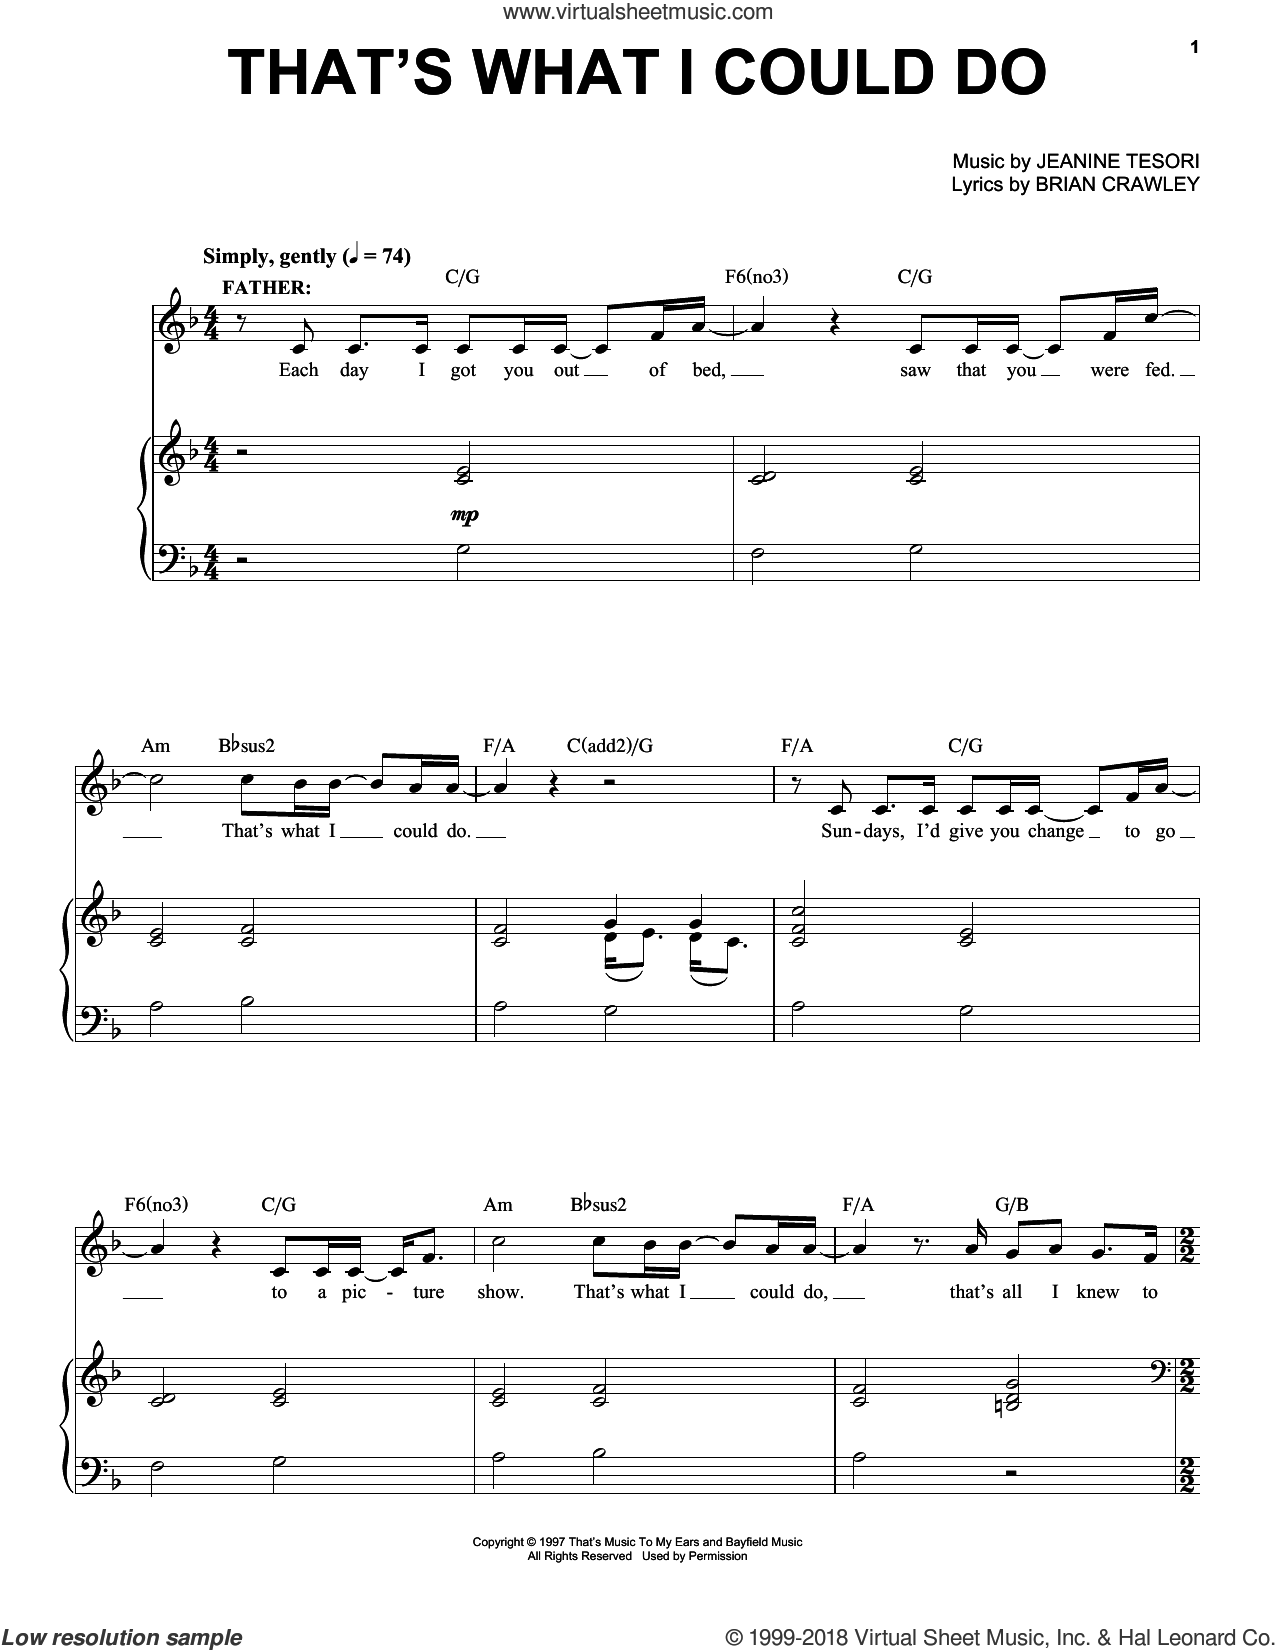 That's What I Could Do sheet music for voice and piano by Jeanine Tesori and Brian Crawley, intermediate skill level